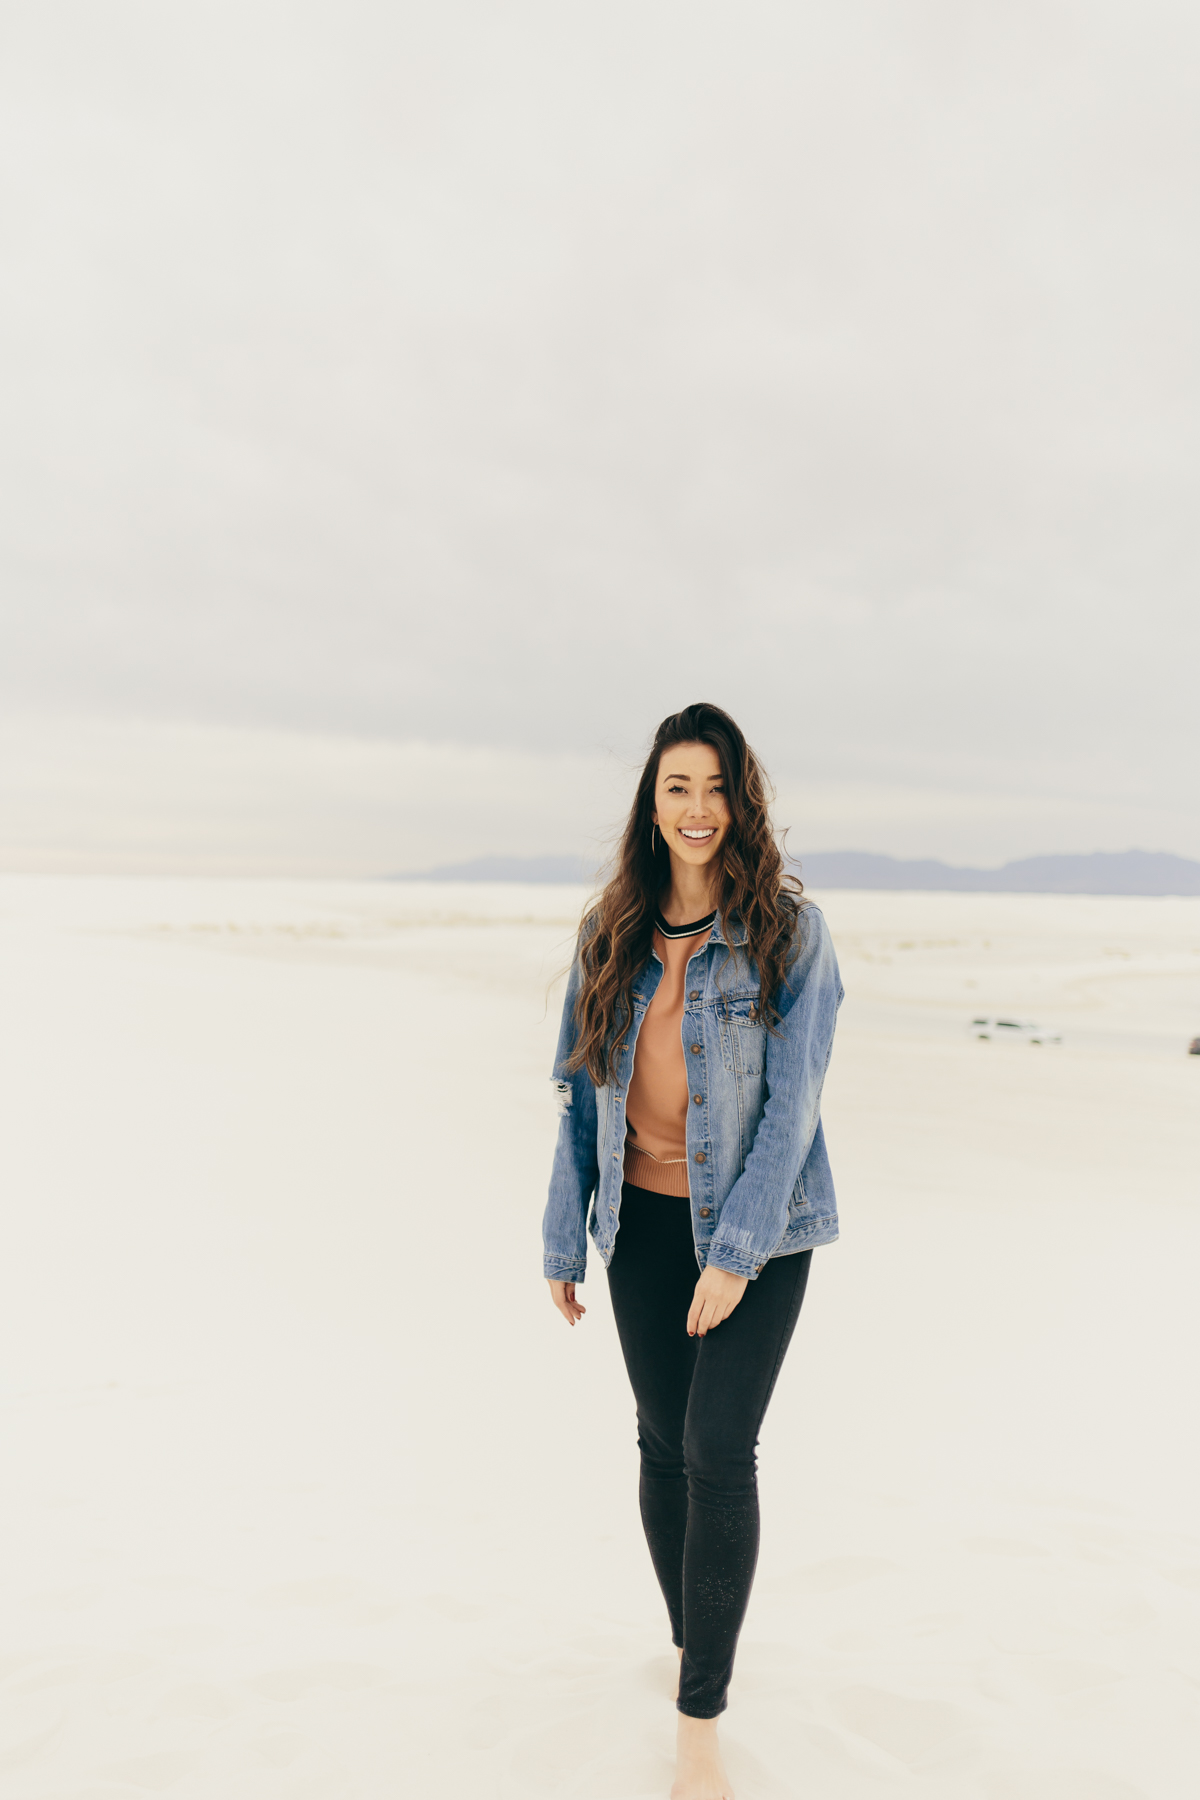 Something Sakura: White Sands, New Mexico